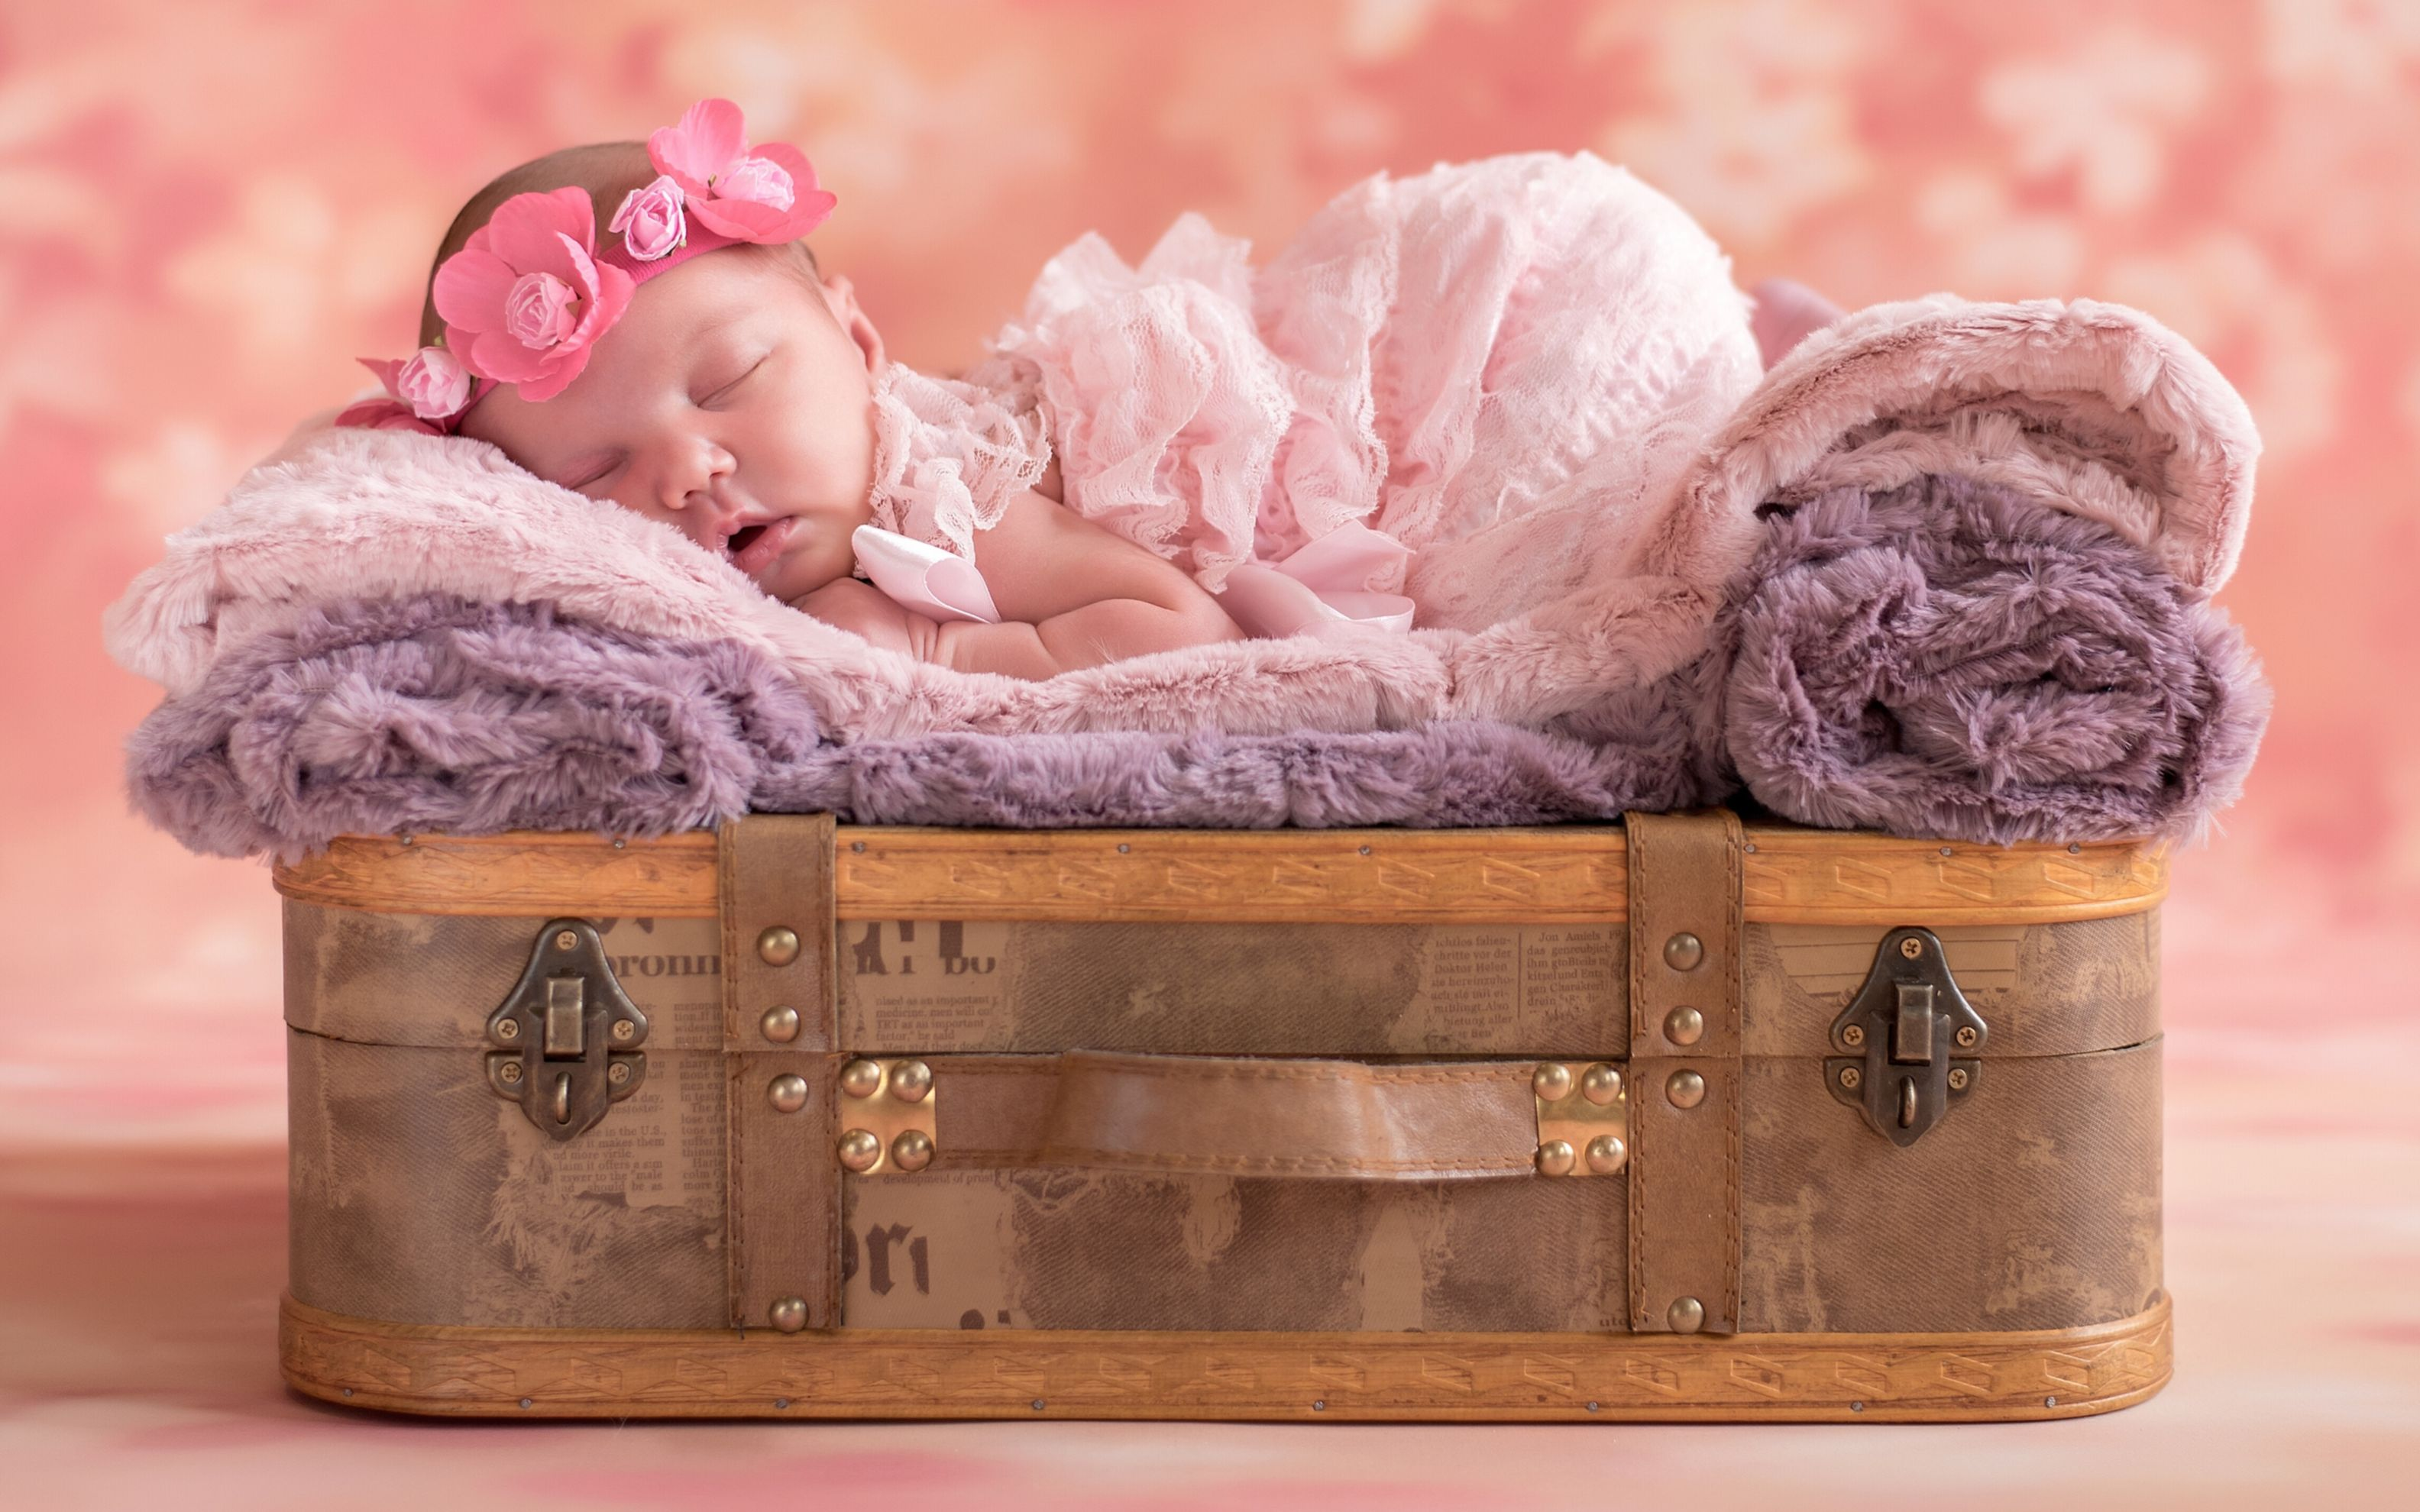 Download free HD Cute Baby Sleep Wide Wallpaper, image